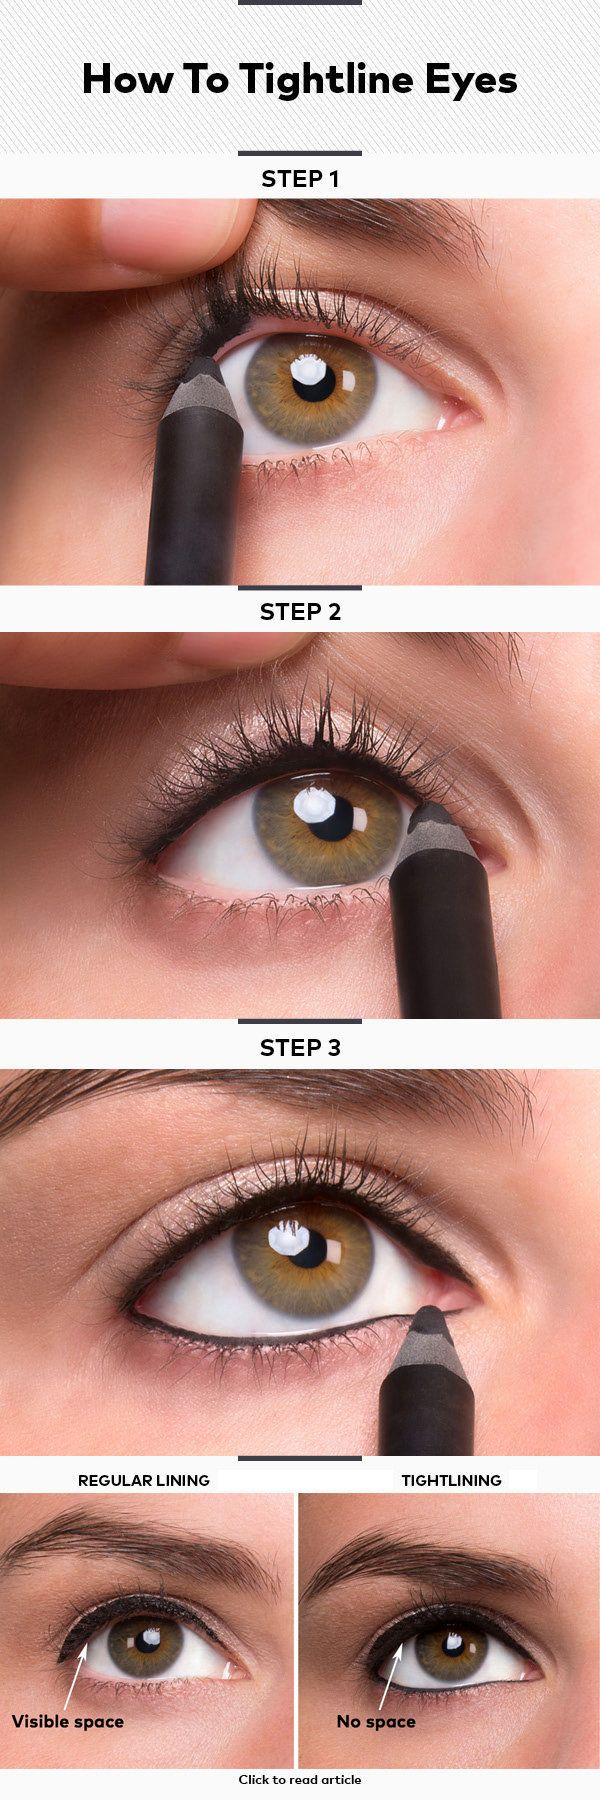 How To Tightline Eyes | Beautylish ORRRR just get super close with your mascara wand:p